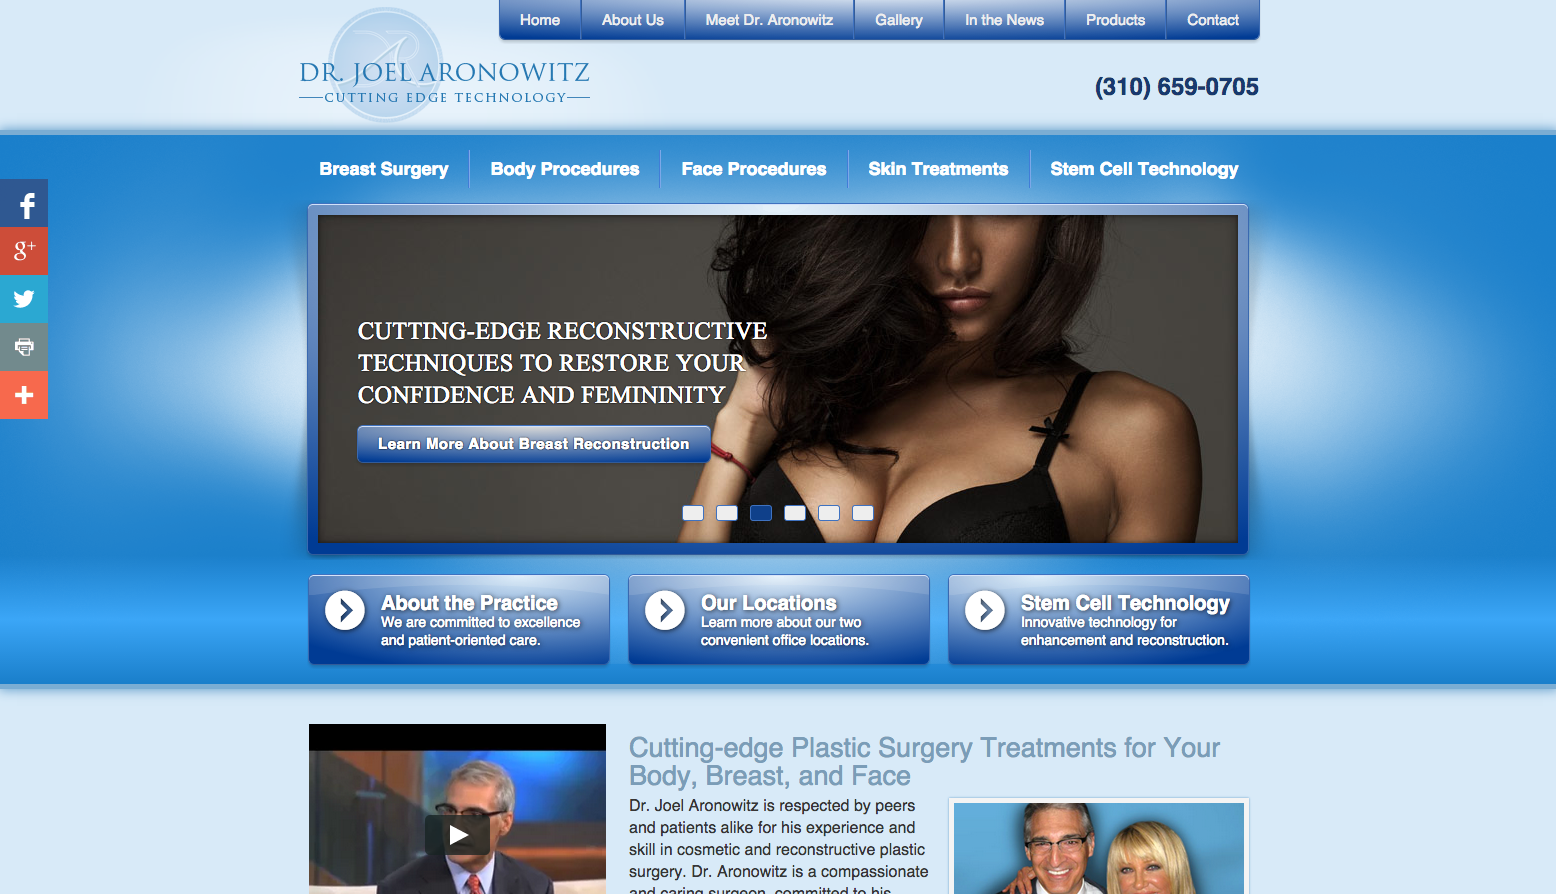 New Einstein Medical website for Aronowitz Plastic Surgery